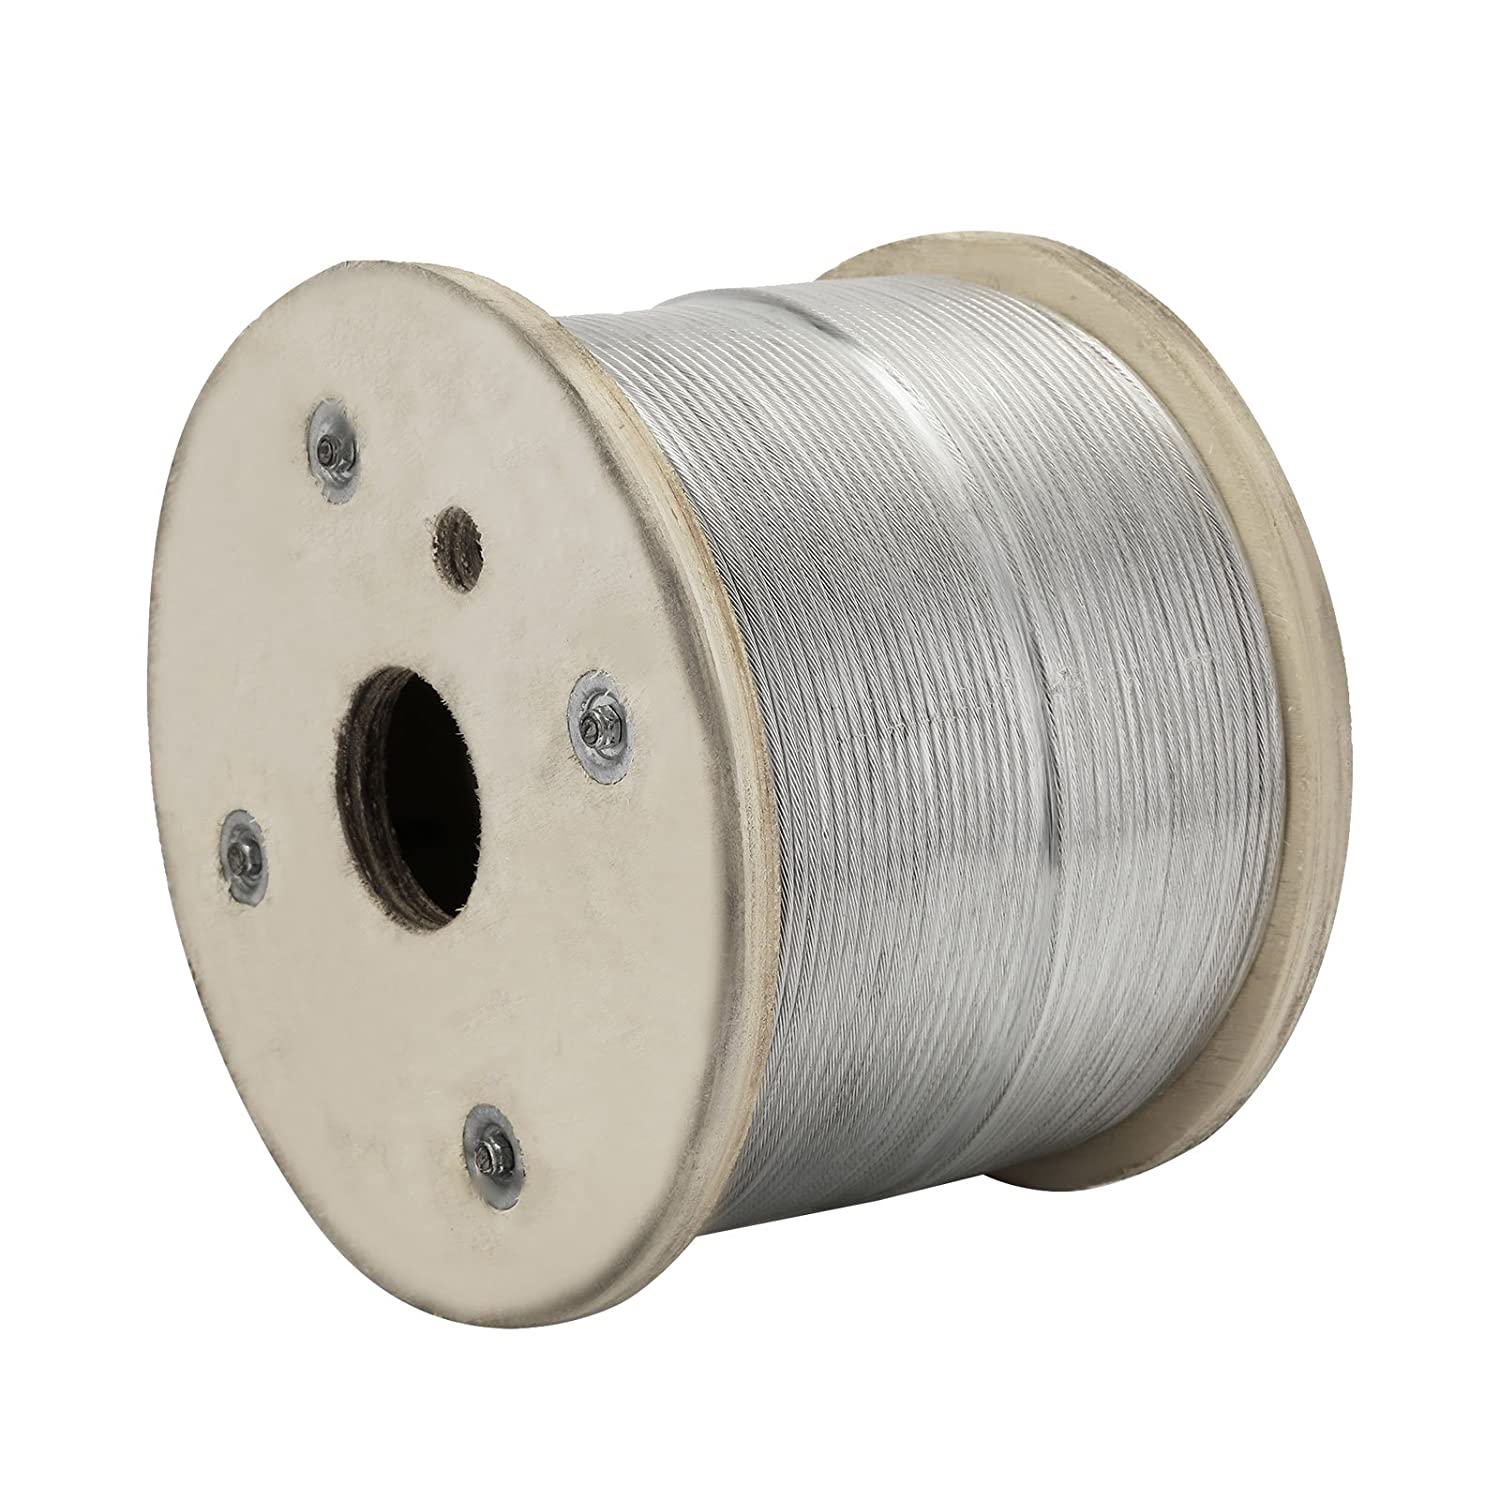 LOVSHARE 1//8 500FT Wire Rope T316 Stainless Steel Cable Railing 7X7 Strand Core Cable Reel 1433 lb Breaking Strength